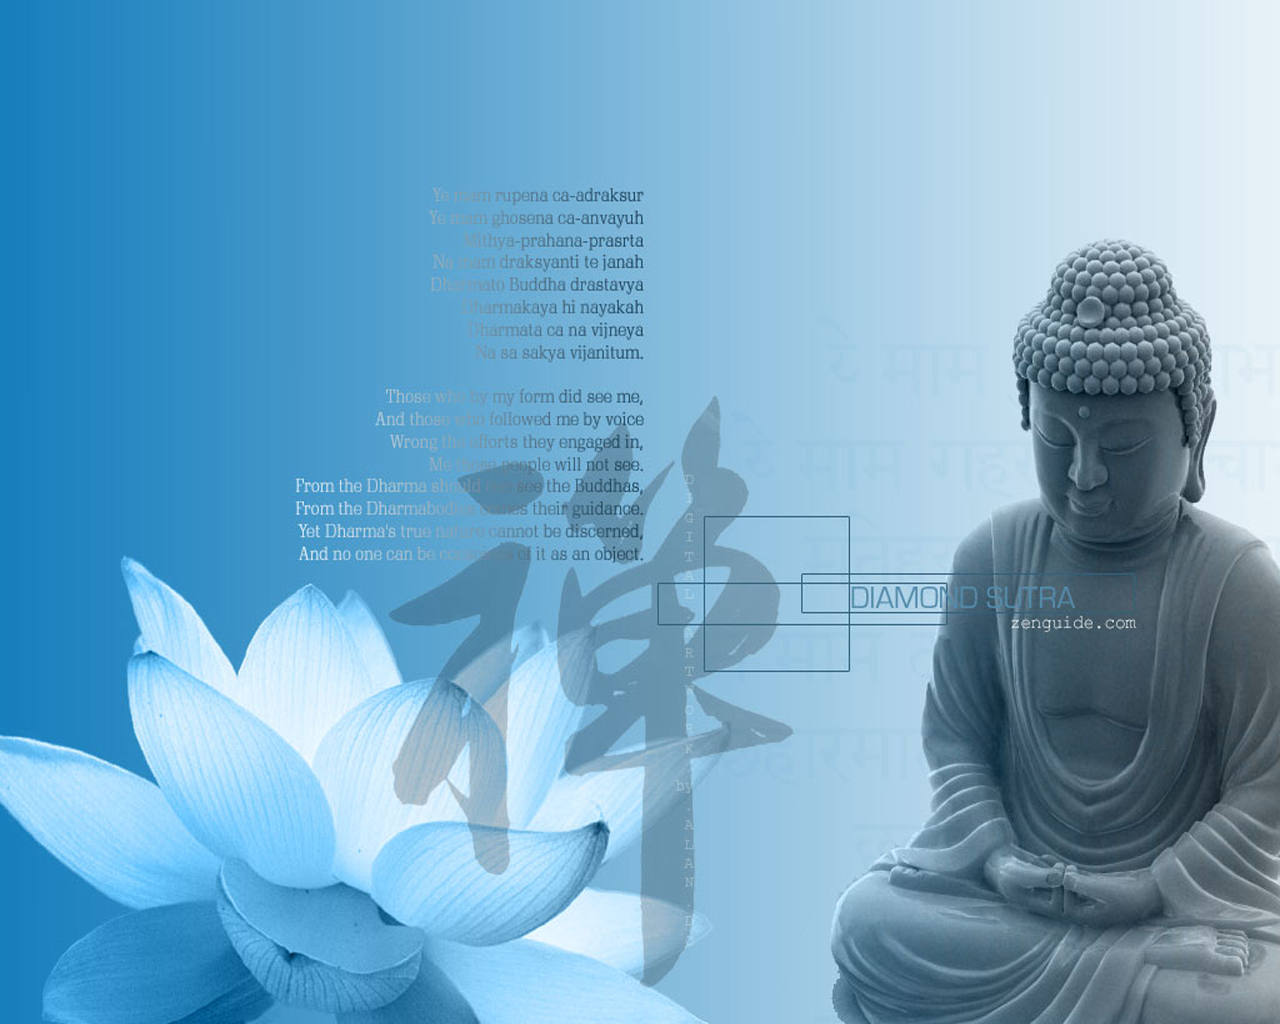 Blue Lotus Buddha Diamond Sutra Quote Buddha On The Wall